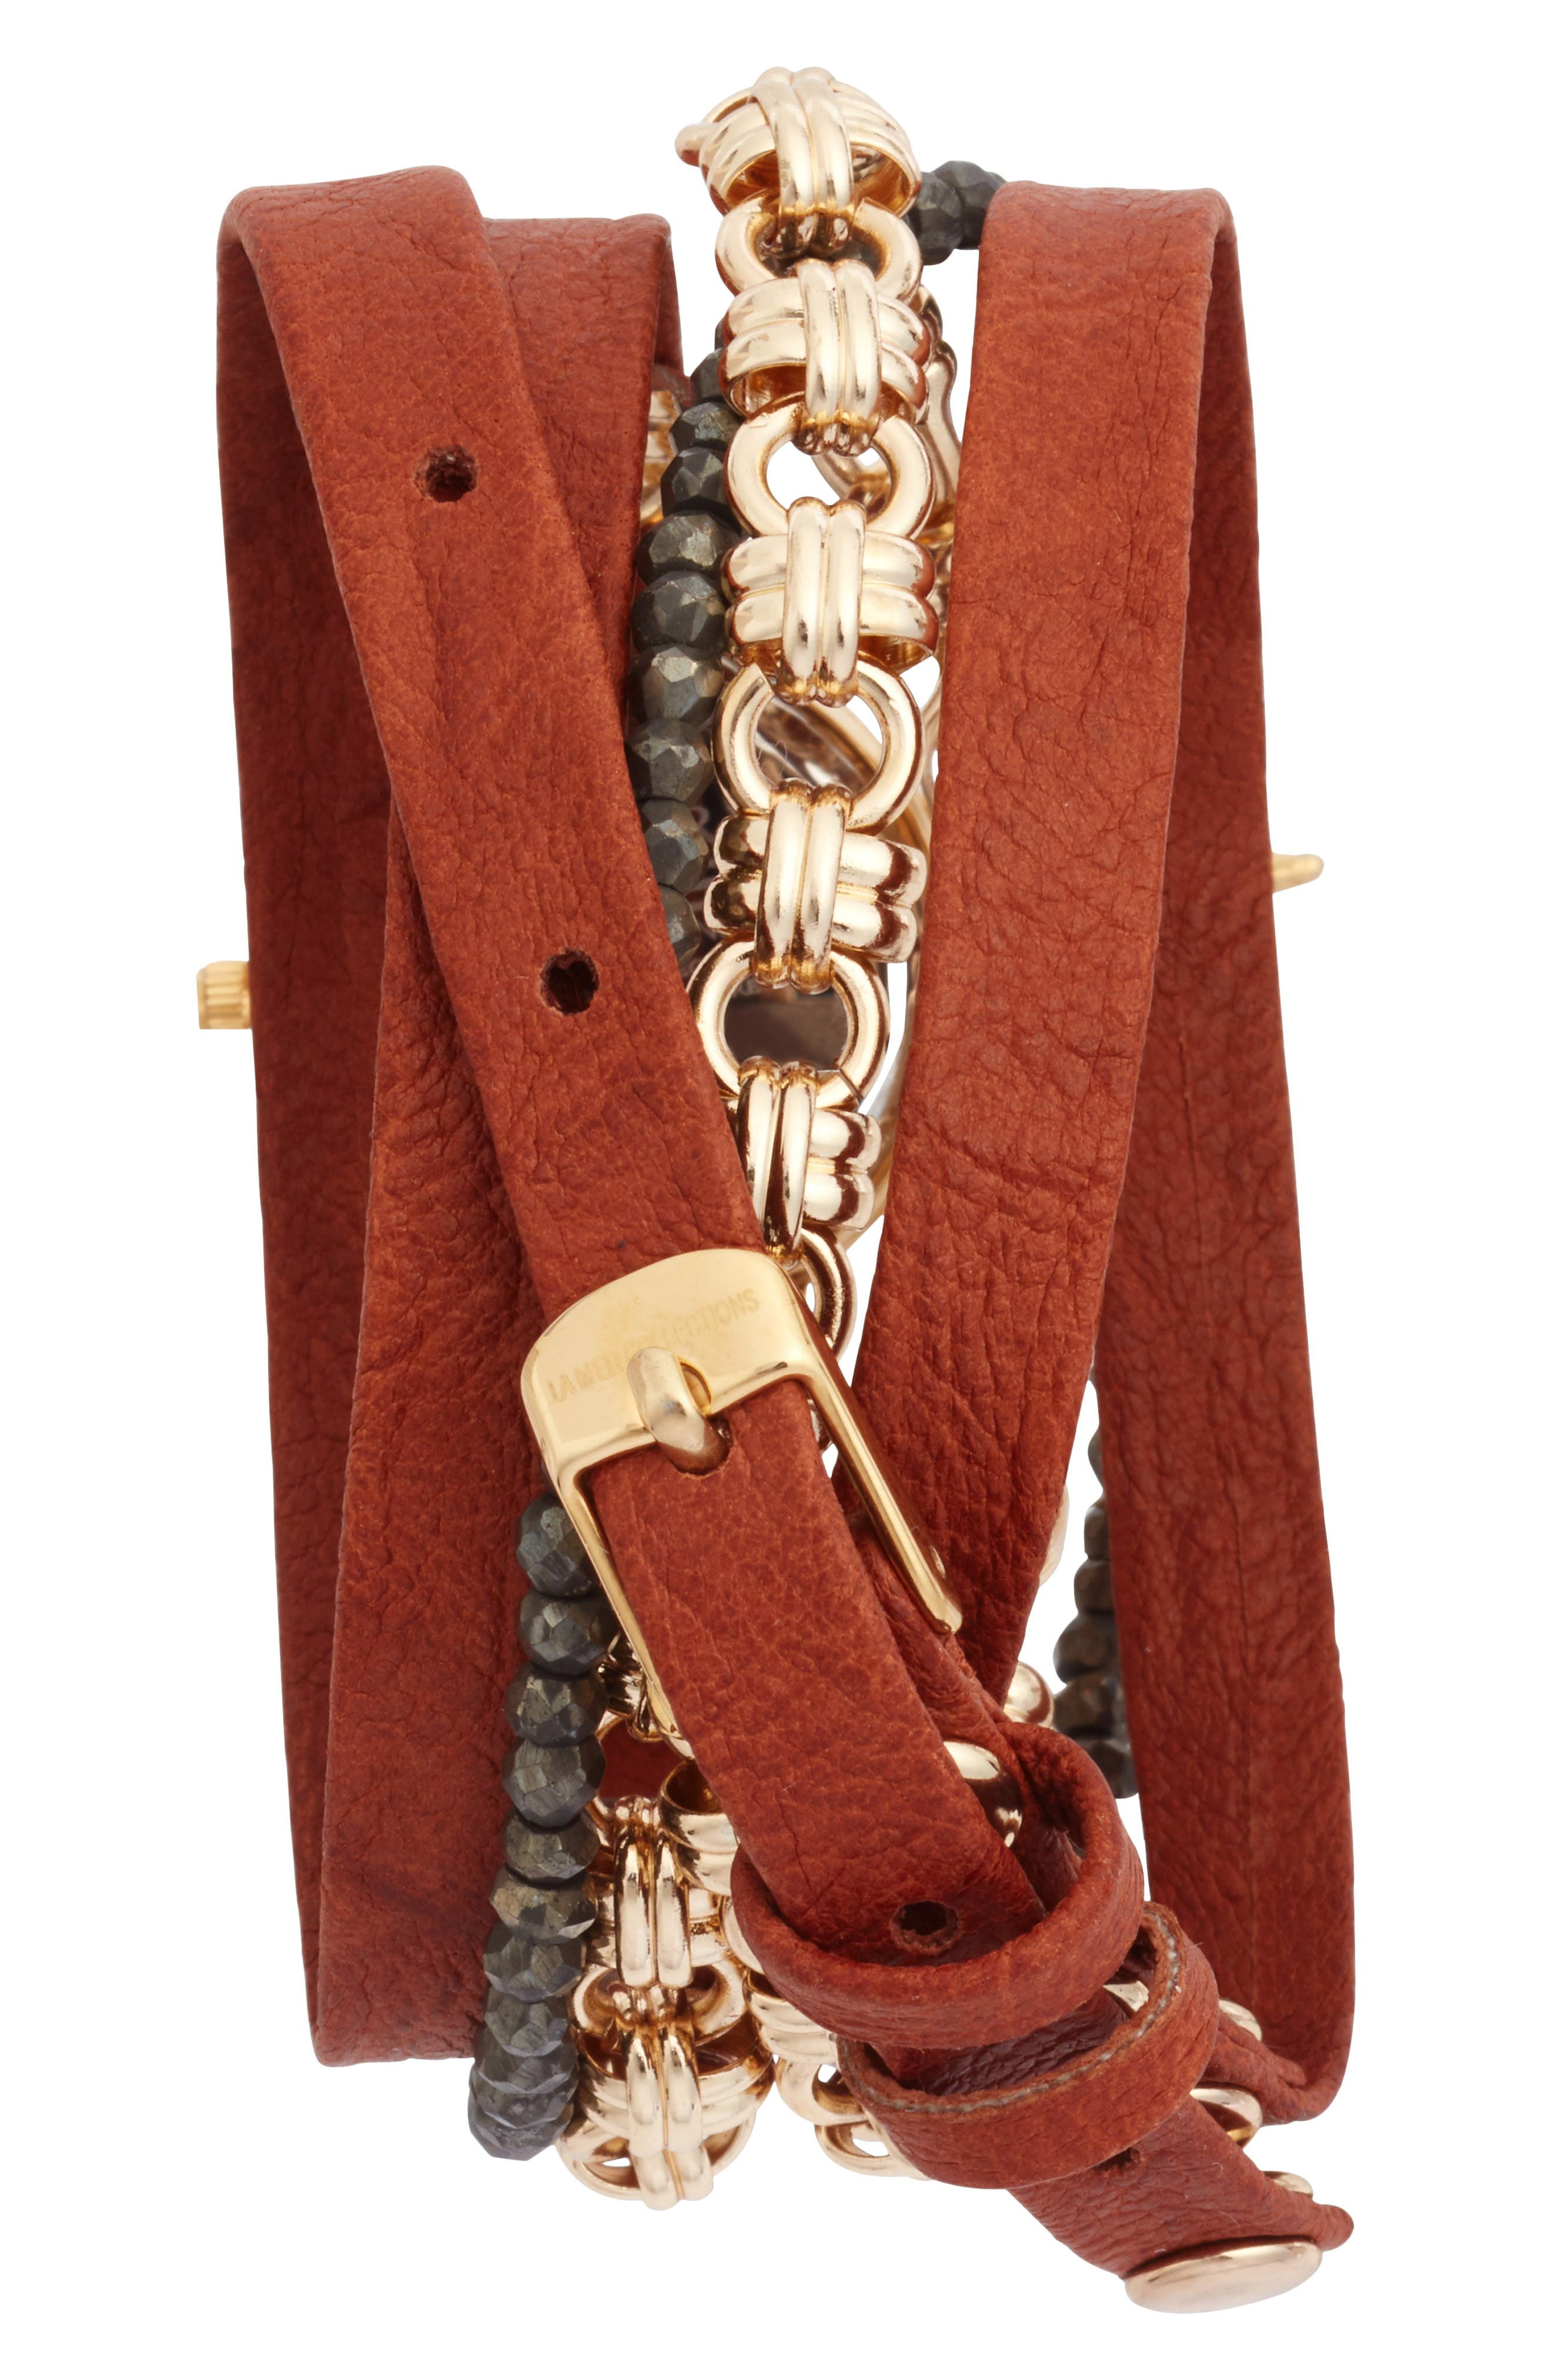 Del Mar Leather & Chain Wrap Watch, 35mm x 20mm,                             Alternate thumbnail 3, color,                             Tobacco/ White/ Gold